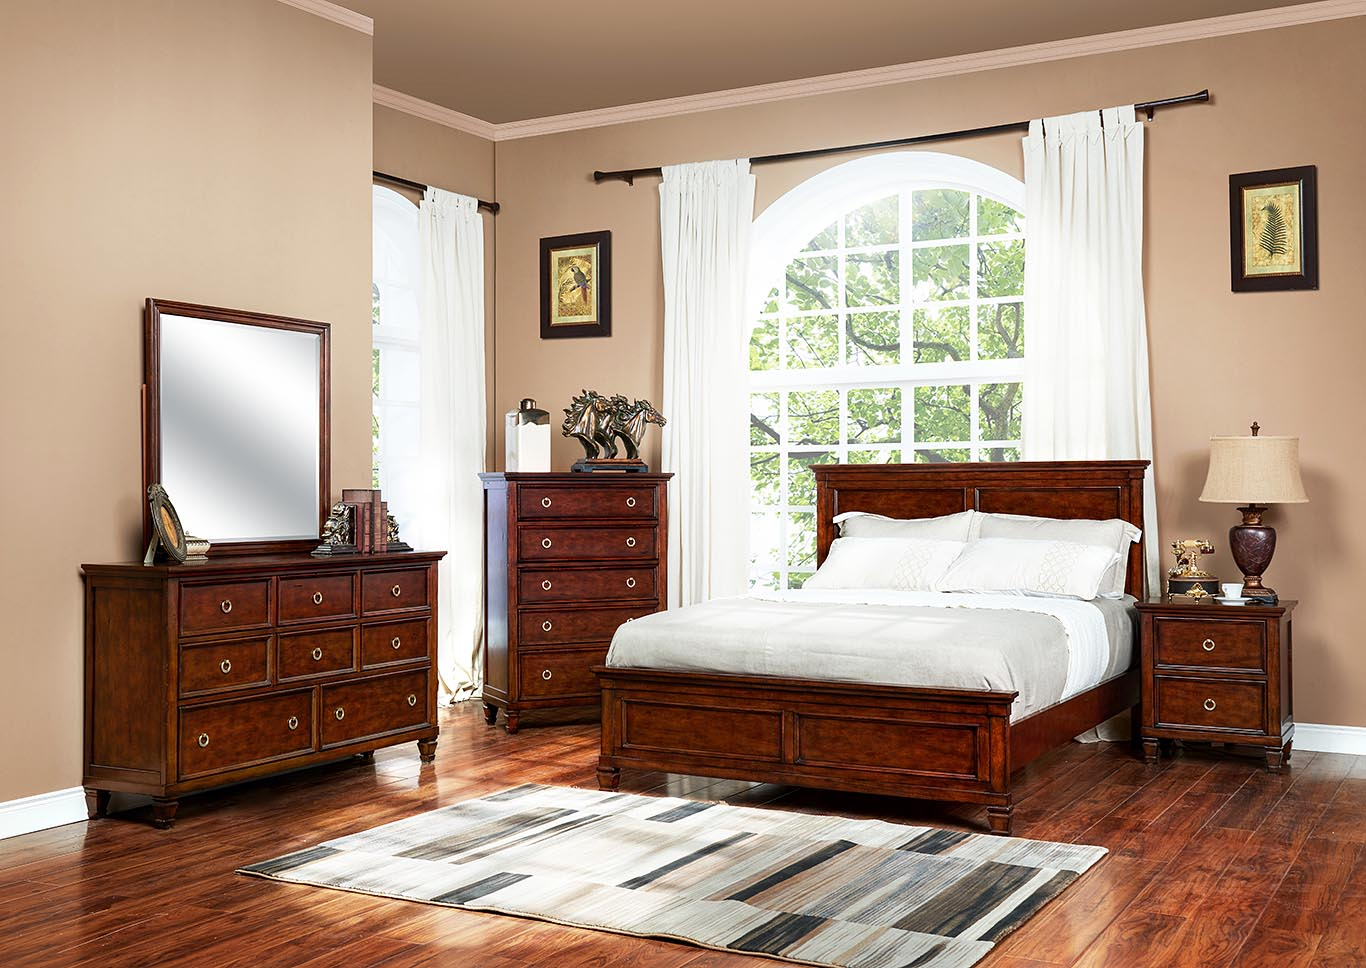 Tamarack Brown Cherry Twin Bed w/Dresser and Mirror,New Classic